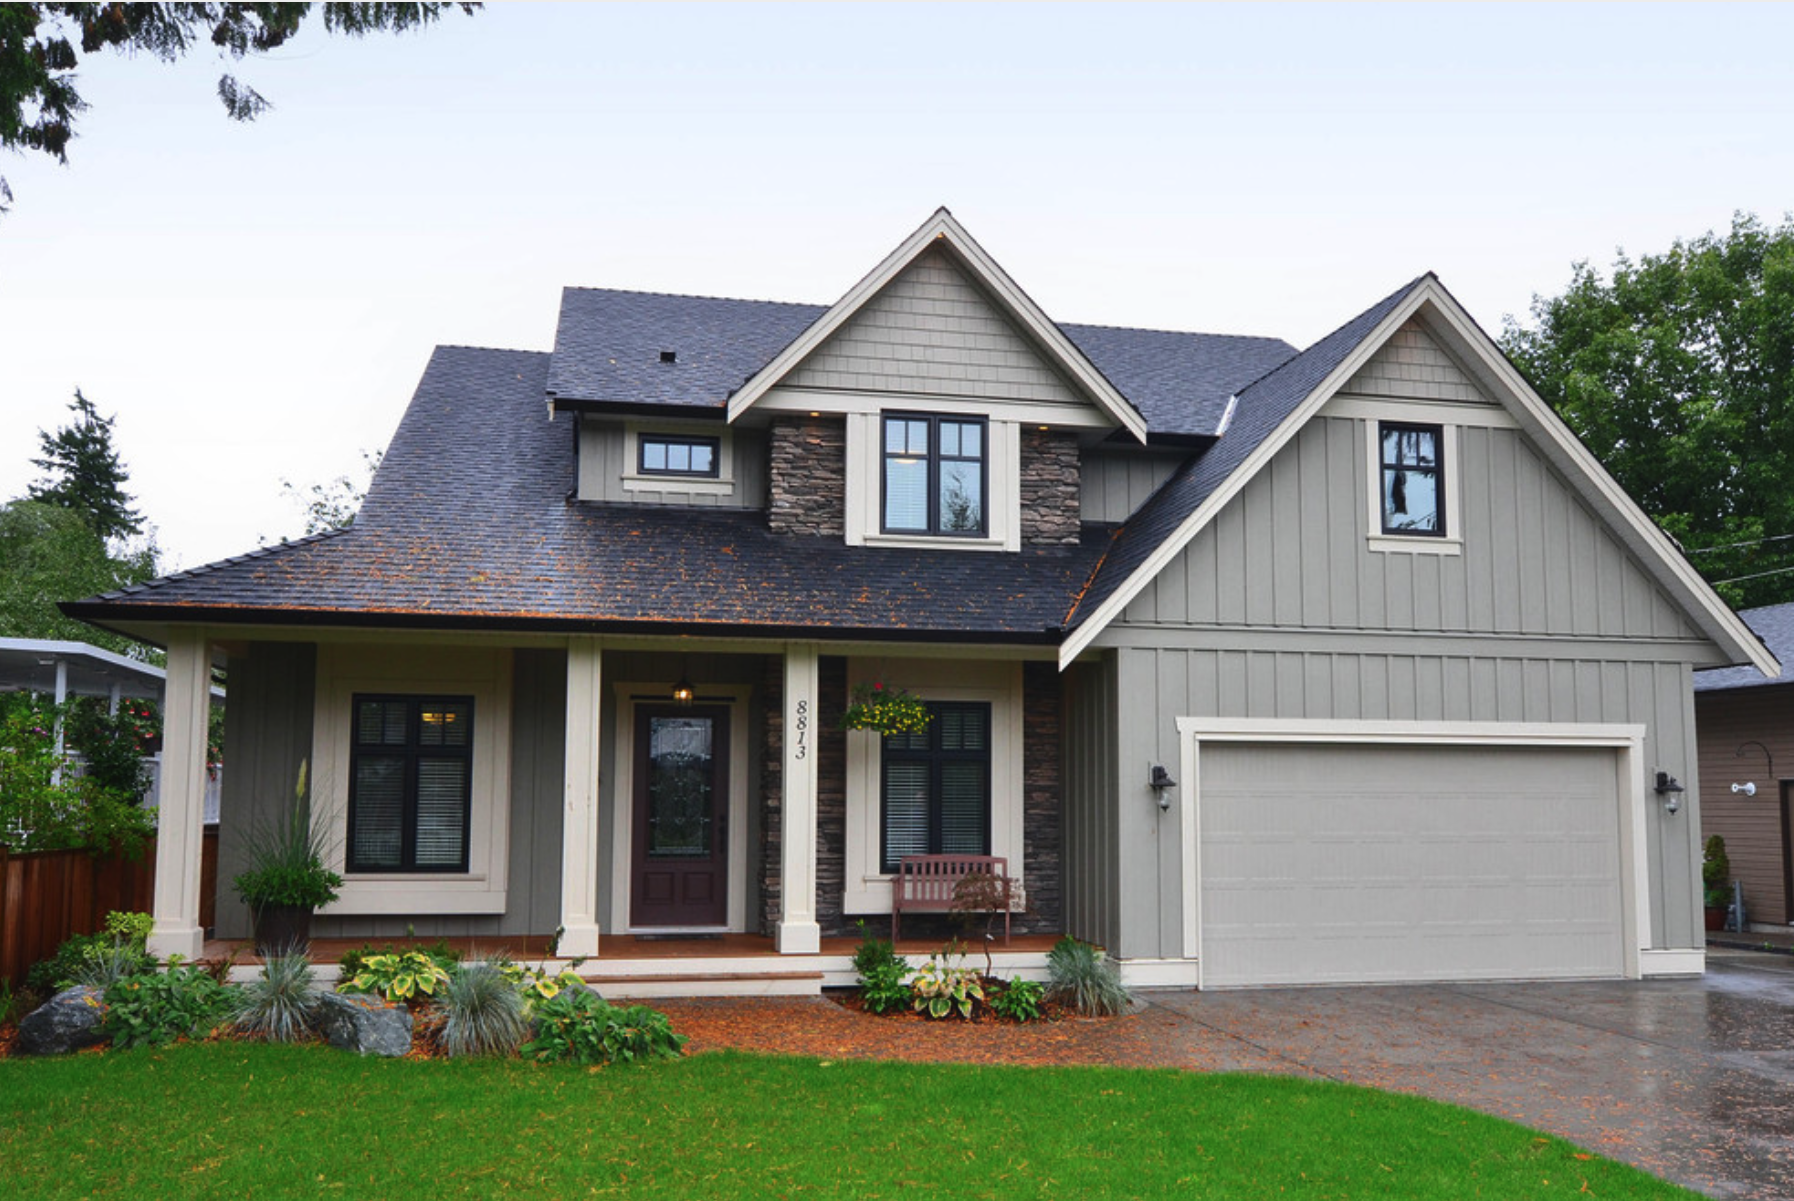 Beautiful Exterior Inspiration For The ATGu0026D Dream Home New Home Construction In  Cambridge, WI. |